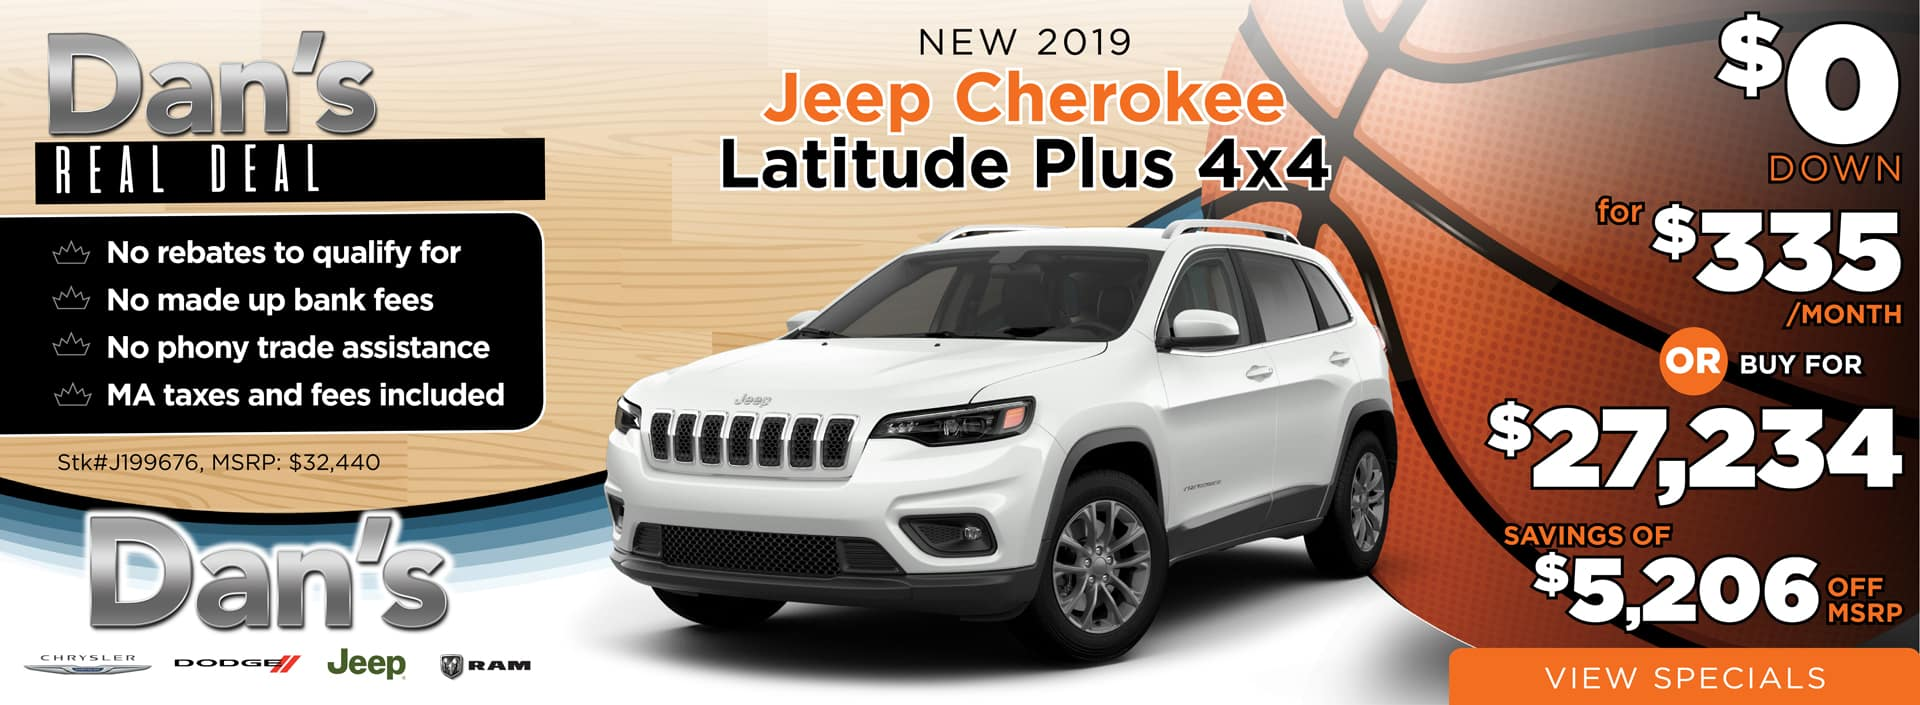 2019 Jeep _Cherokee Latitude Plus